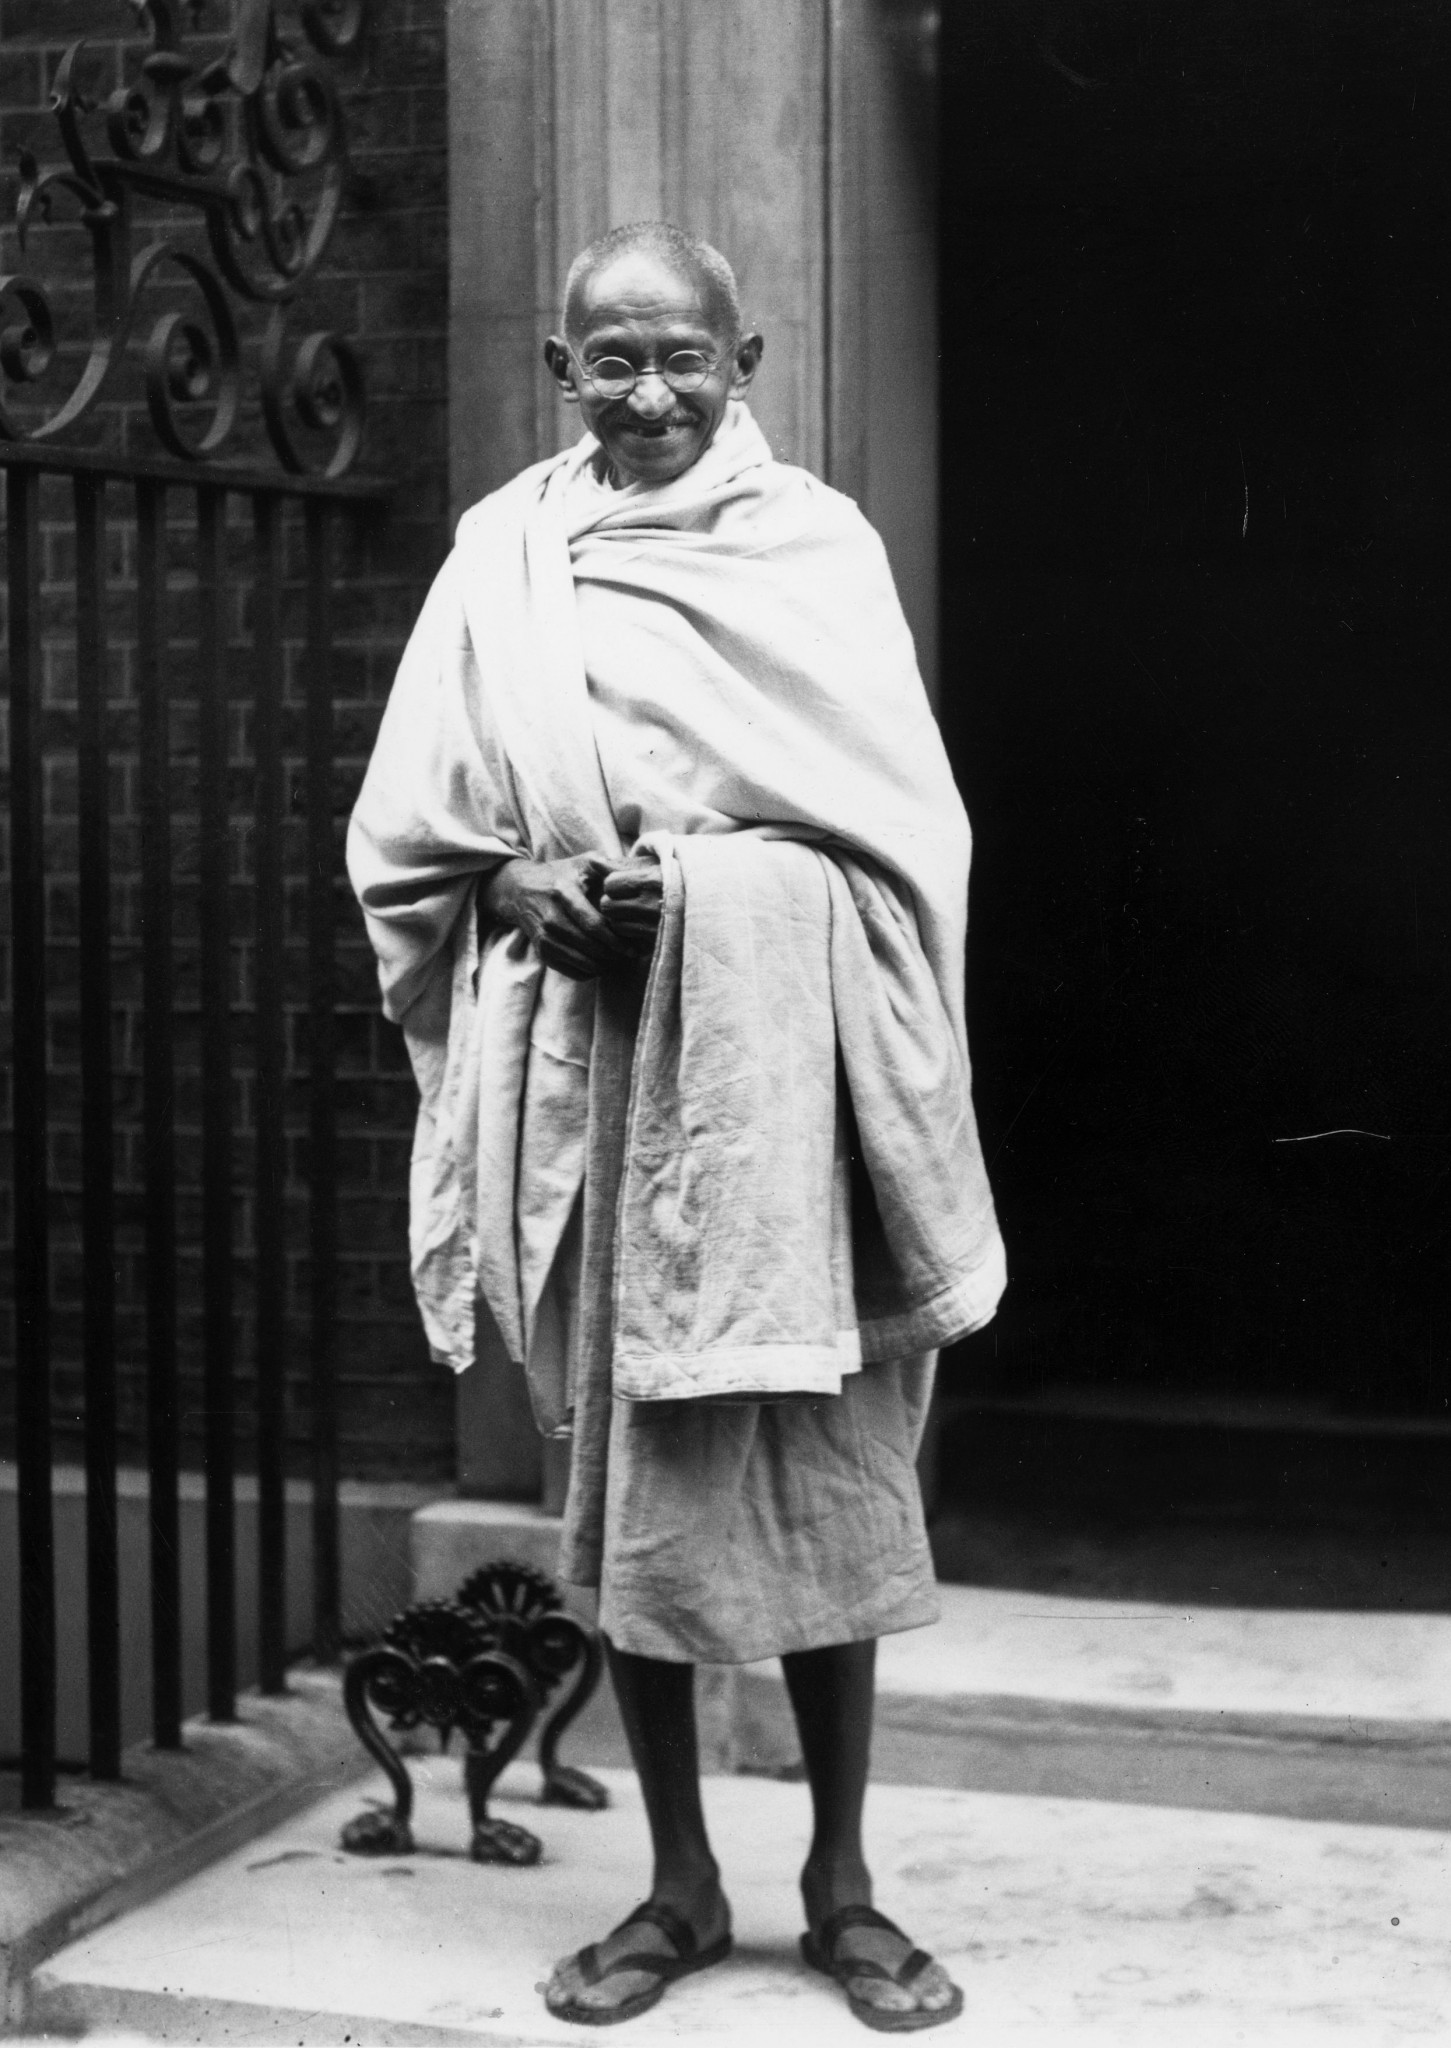 Mahatma Gandhi at 10 Downing Street